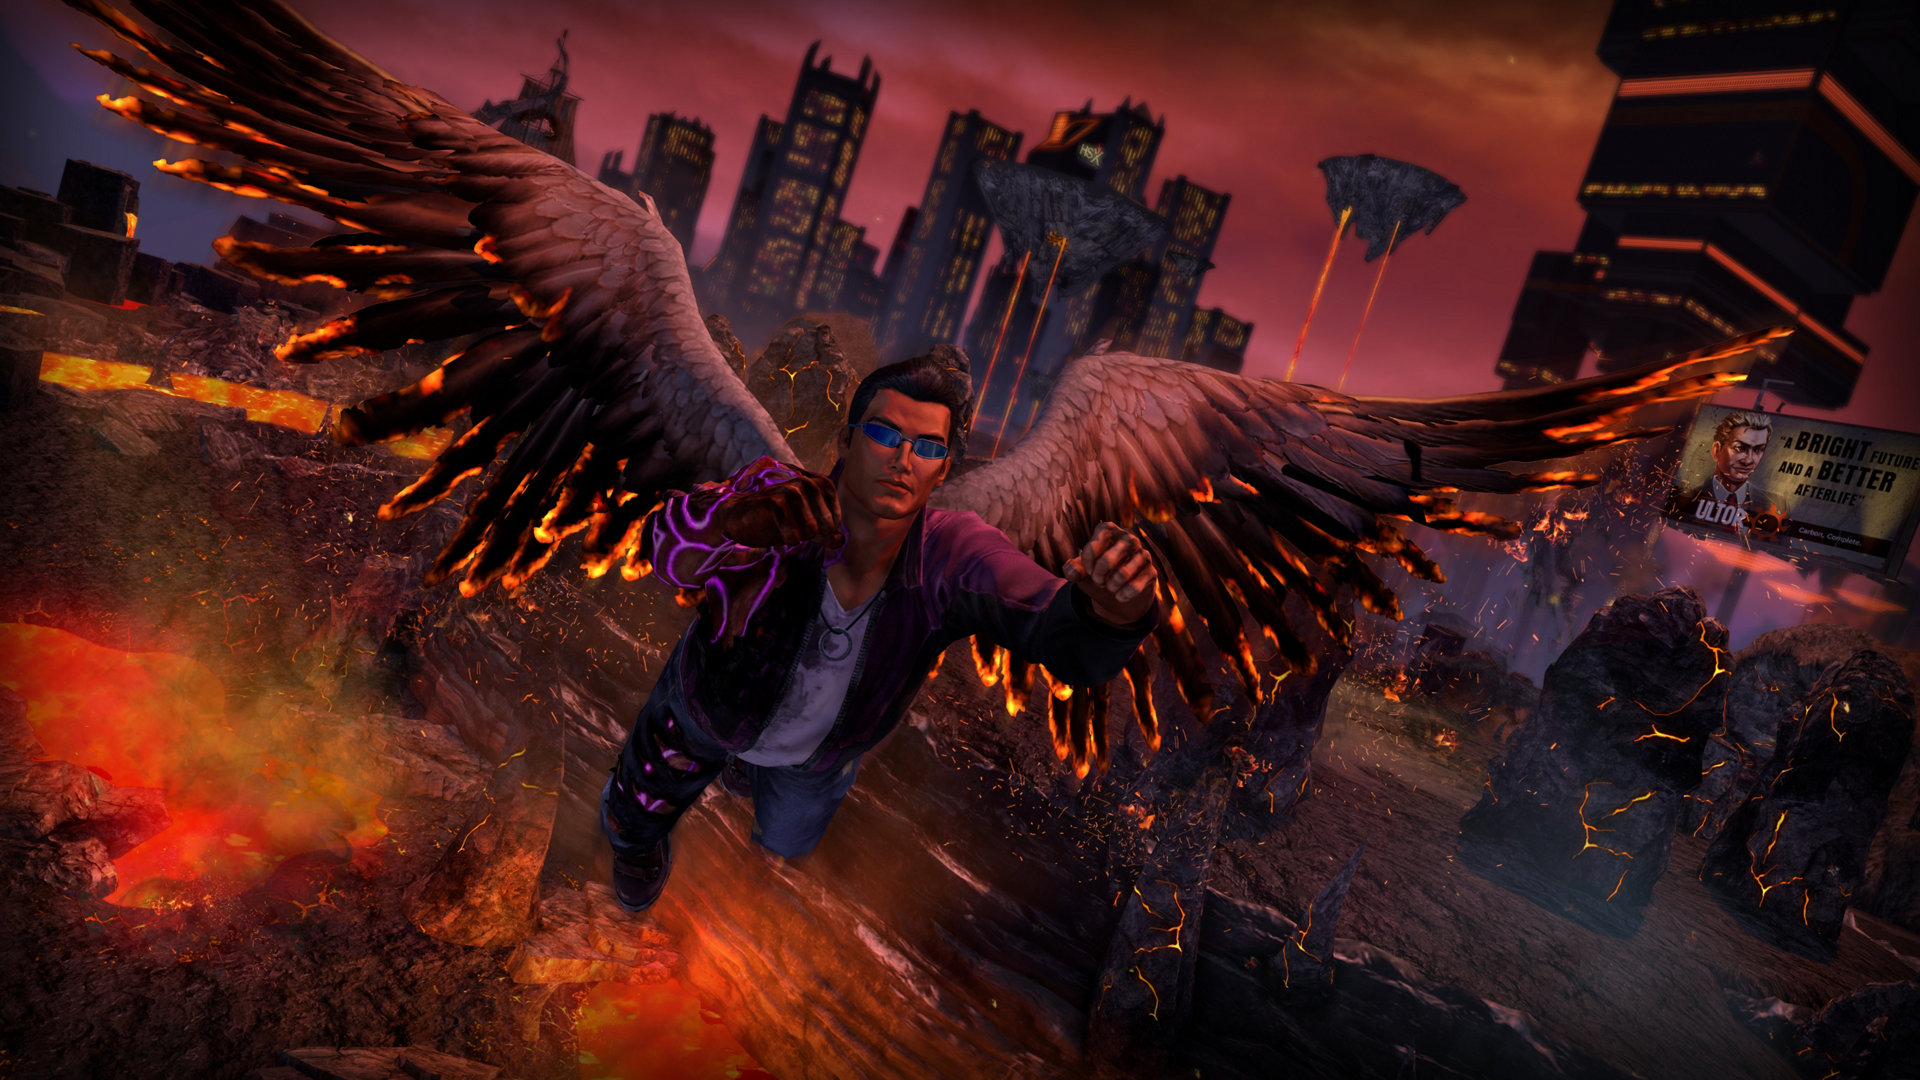 https://media.playstation.com/is/image/SCEA/saints-row-4-gat-out-of-hell-screenshot-02-ps3-us-09sep14?$MediaCarousel_Original$